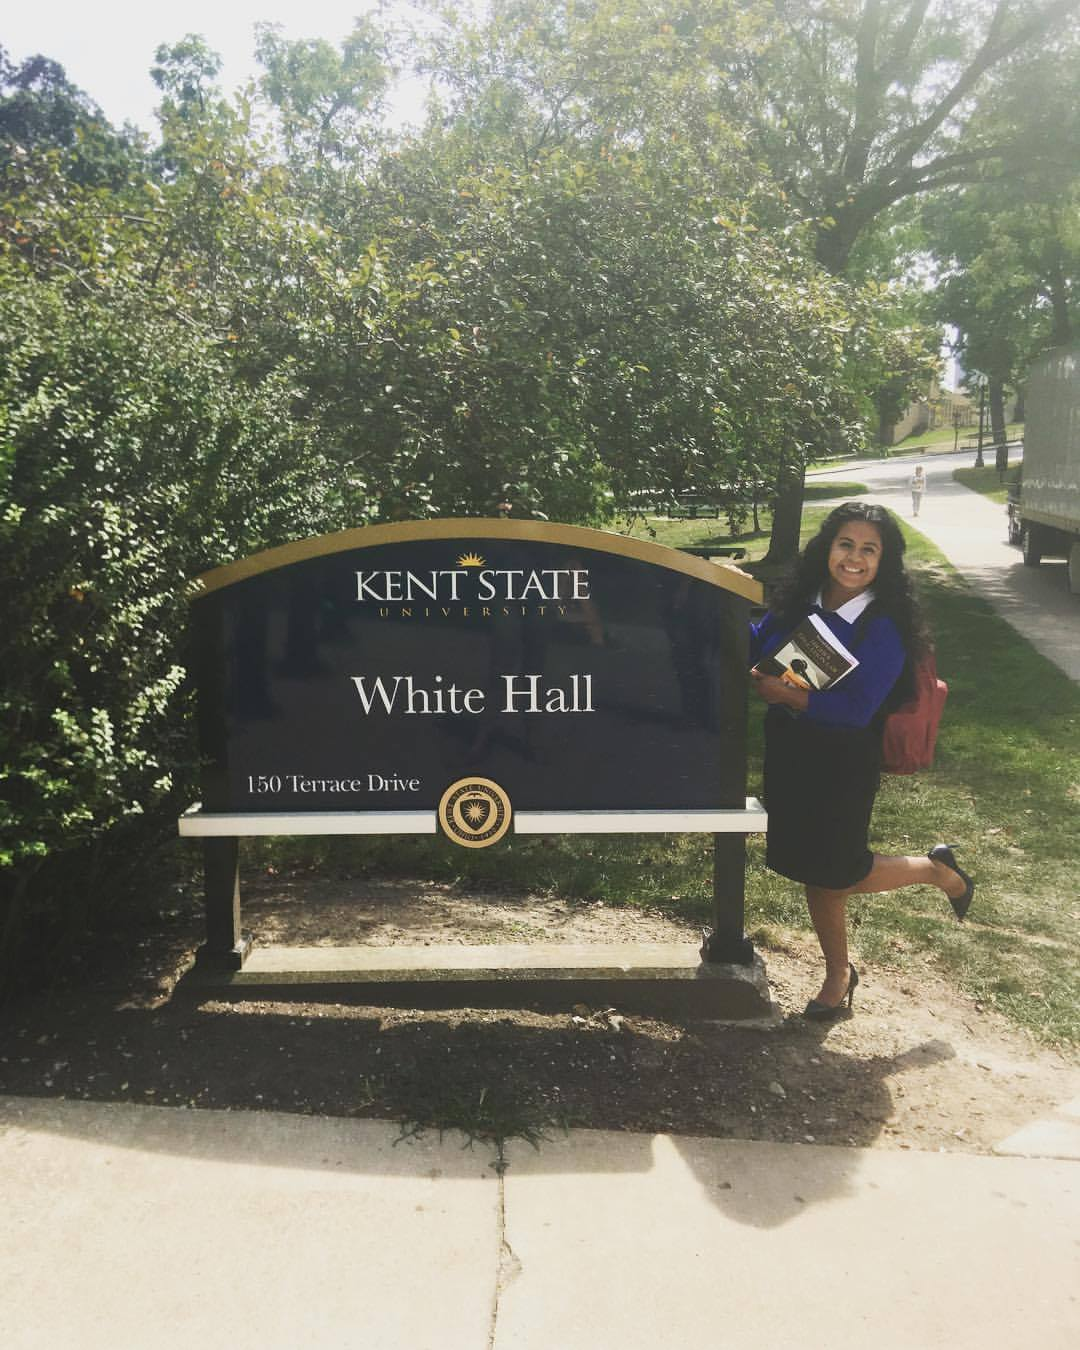 Author is posing next to building sign on Kent State University's campus.